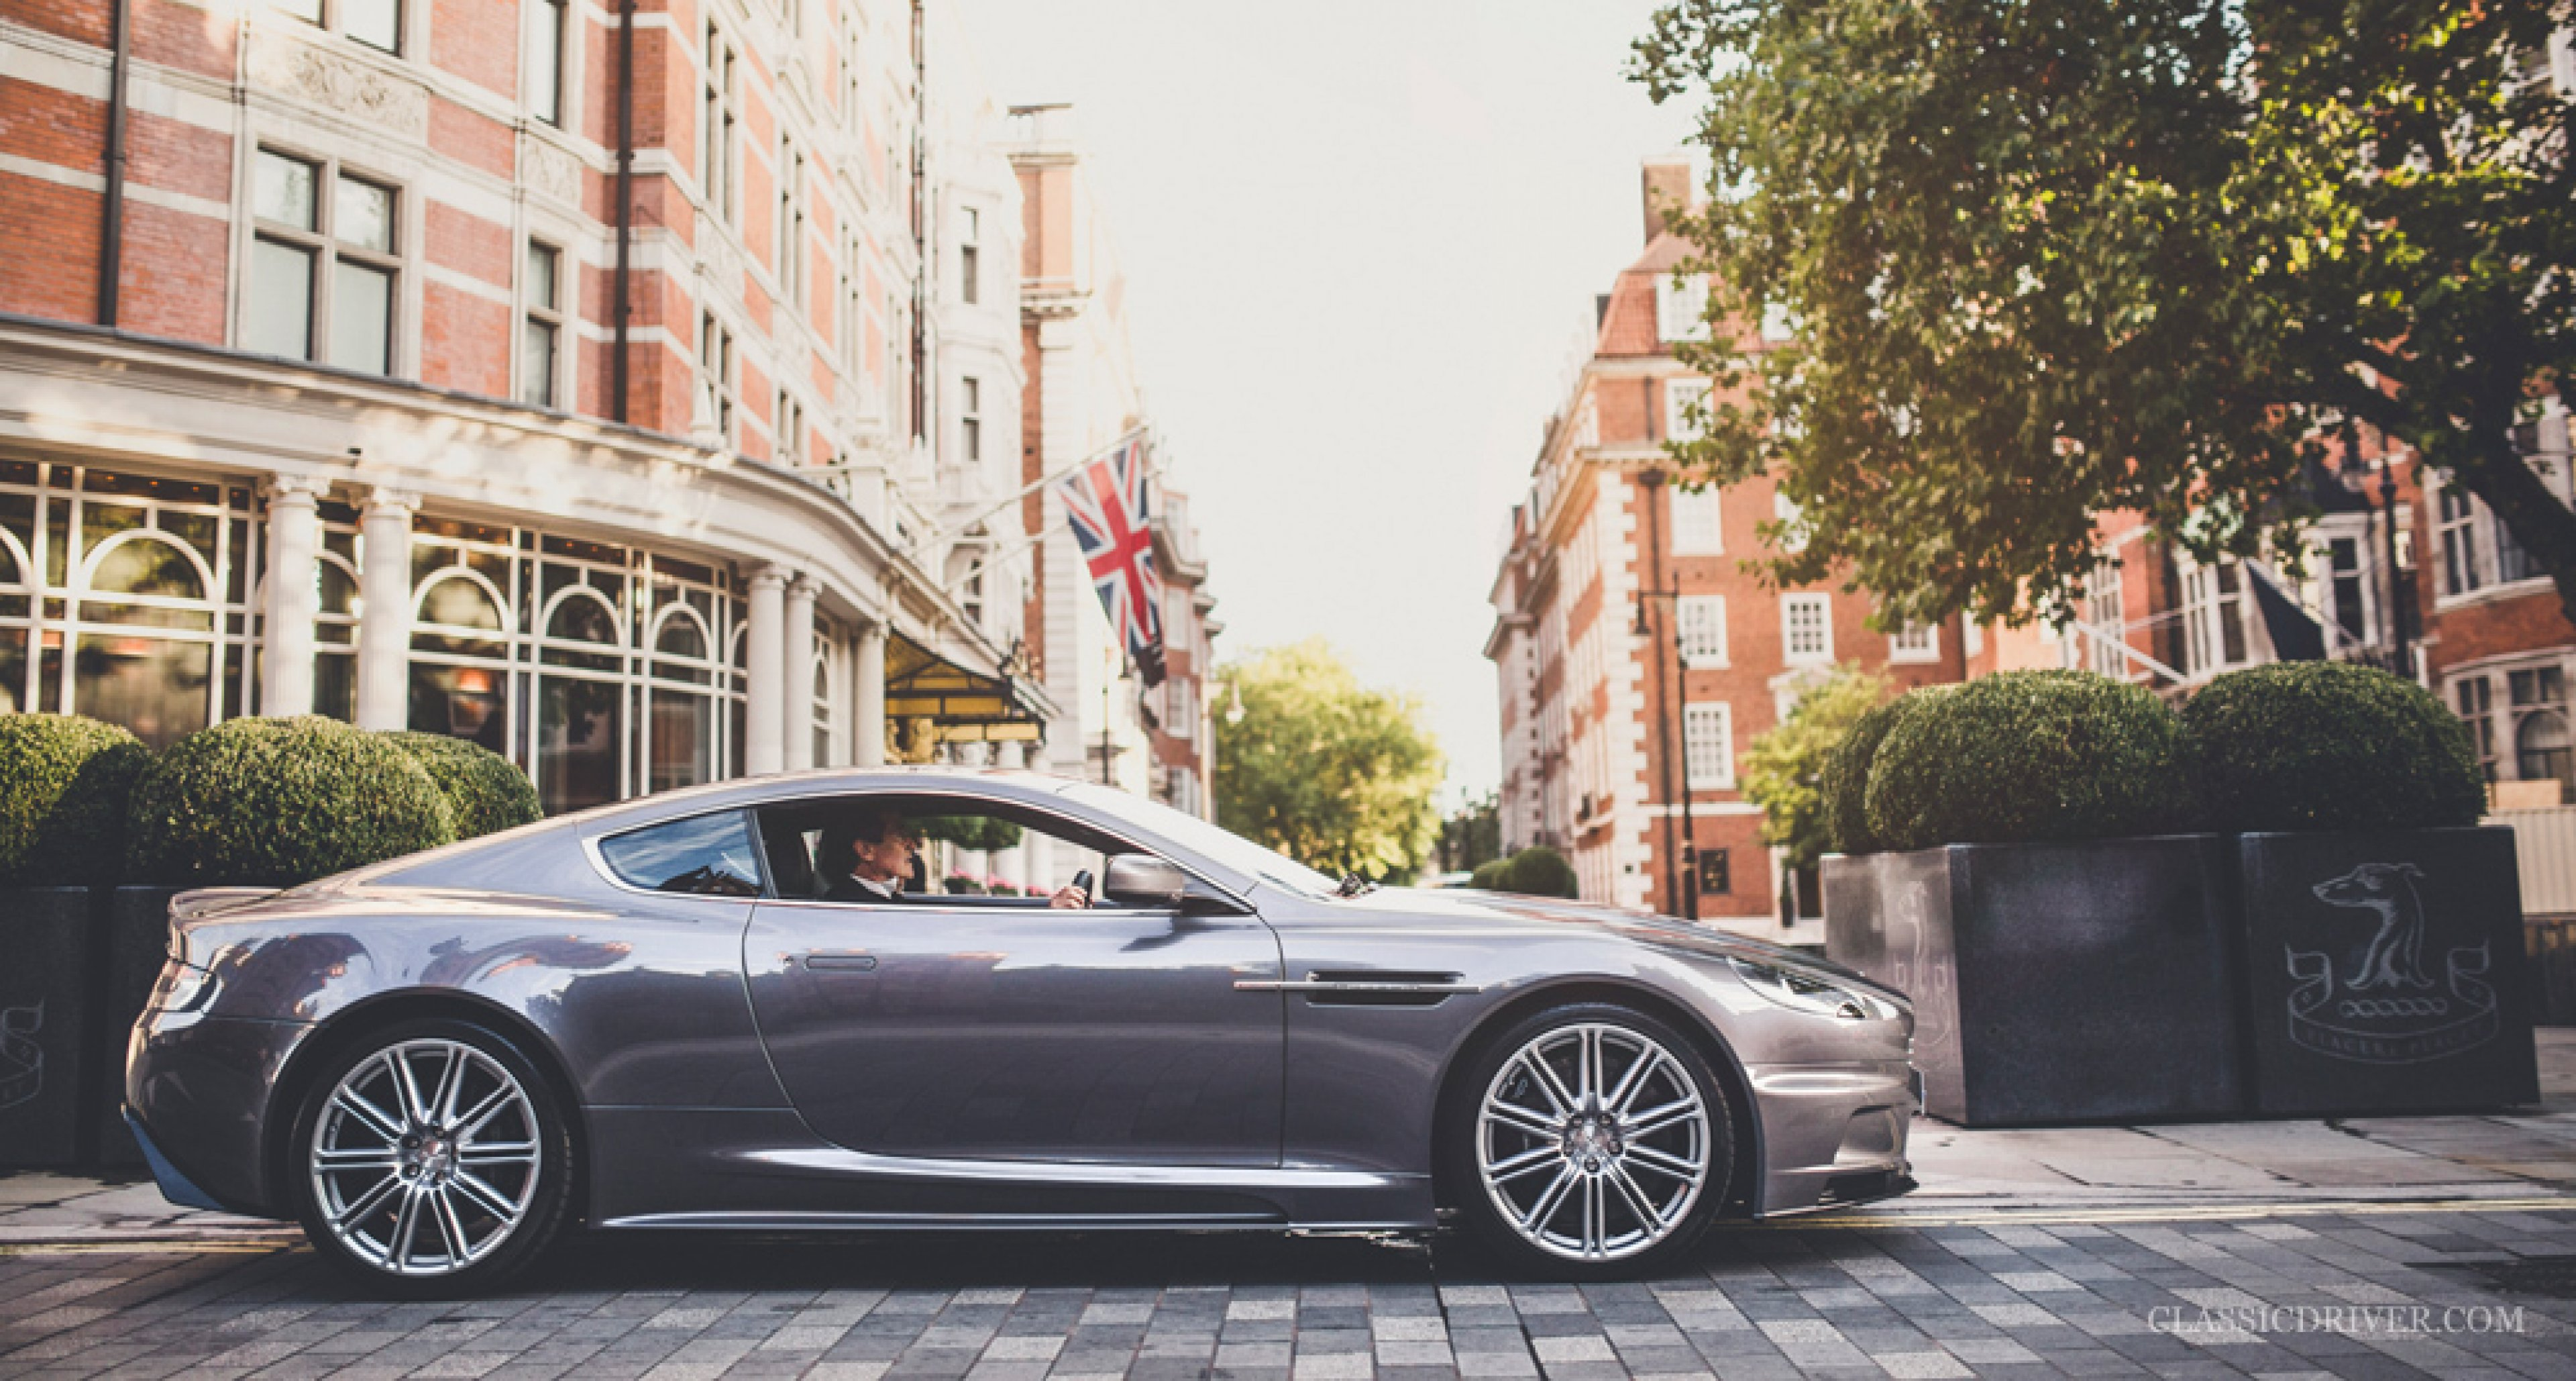 brotherly bond: why i bought the casino royale aston martin dbs